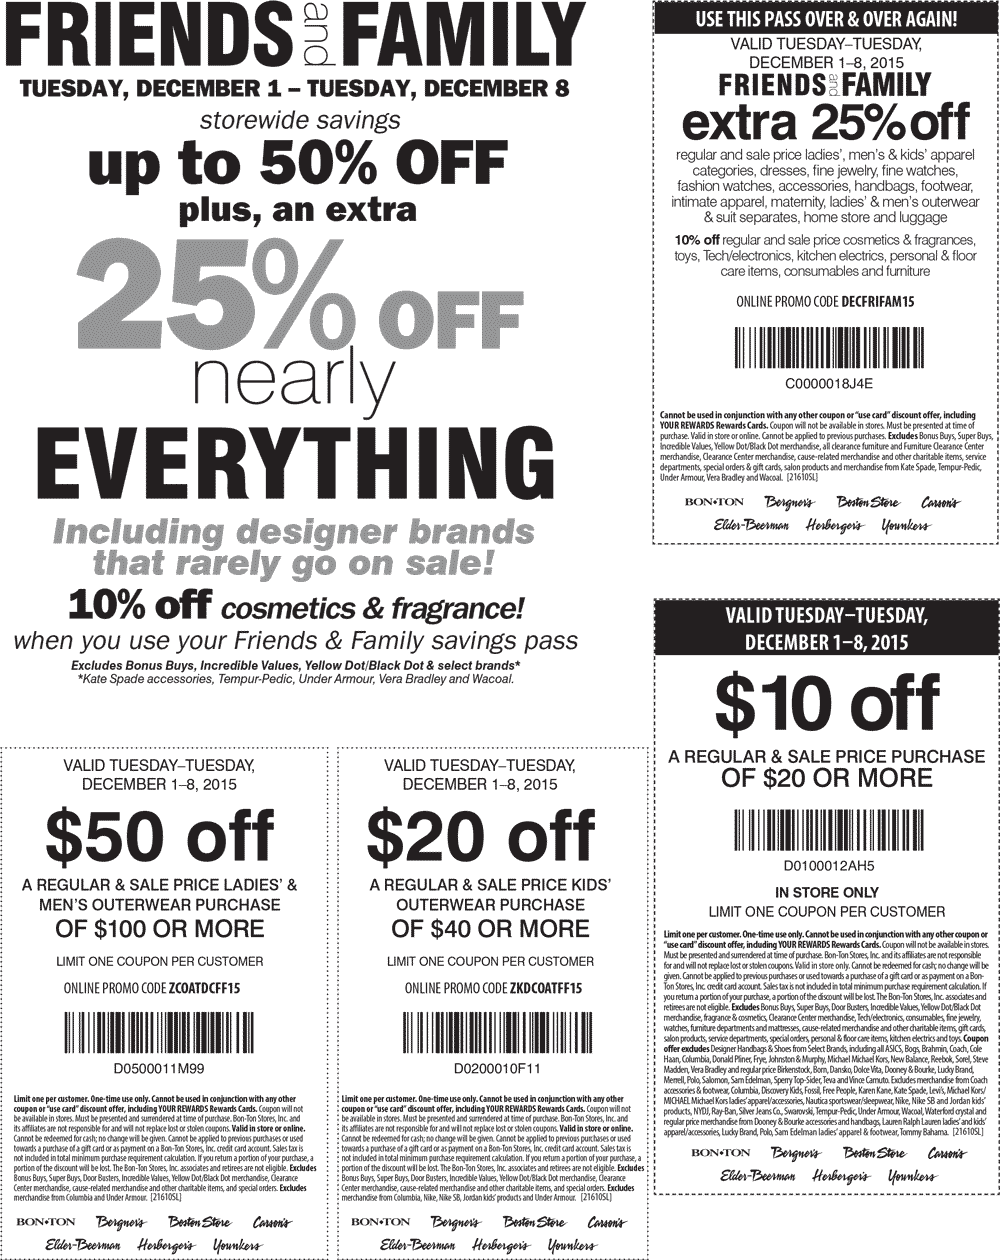 Carsons Coupon May 2019 Extra 25% off & more at Bon Ton, Carsons & sister stores, or online via promo code DECFRIFAM15